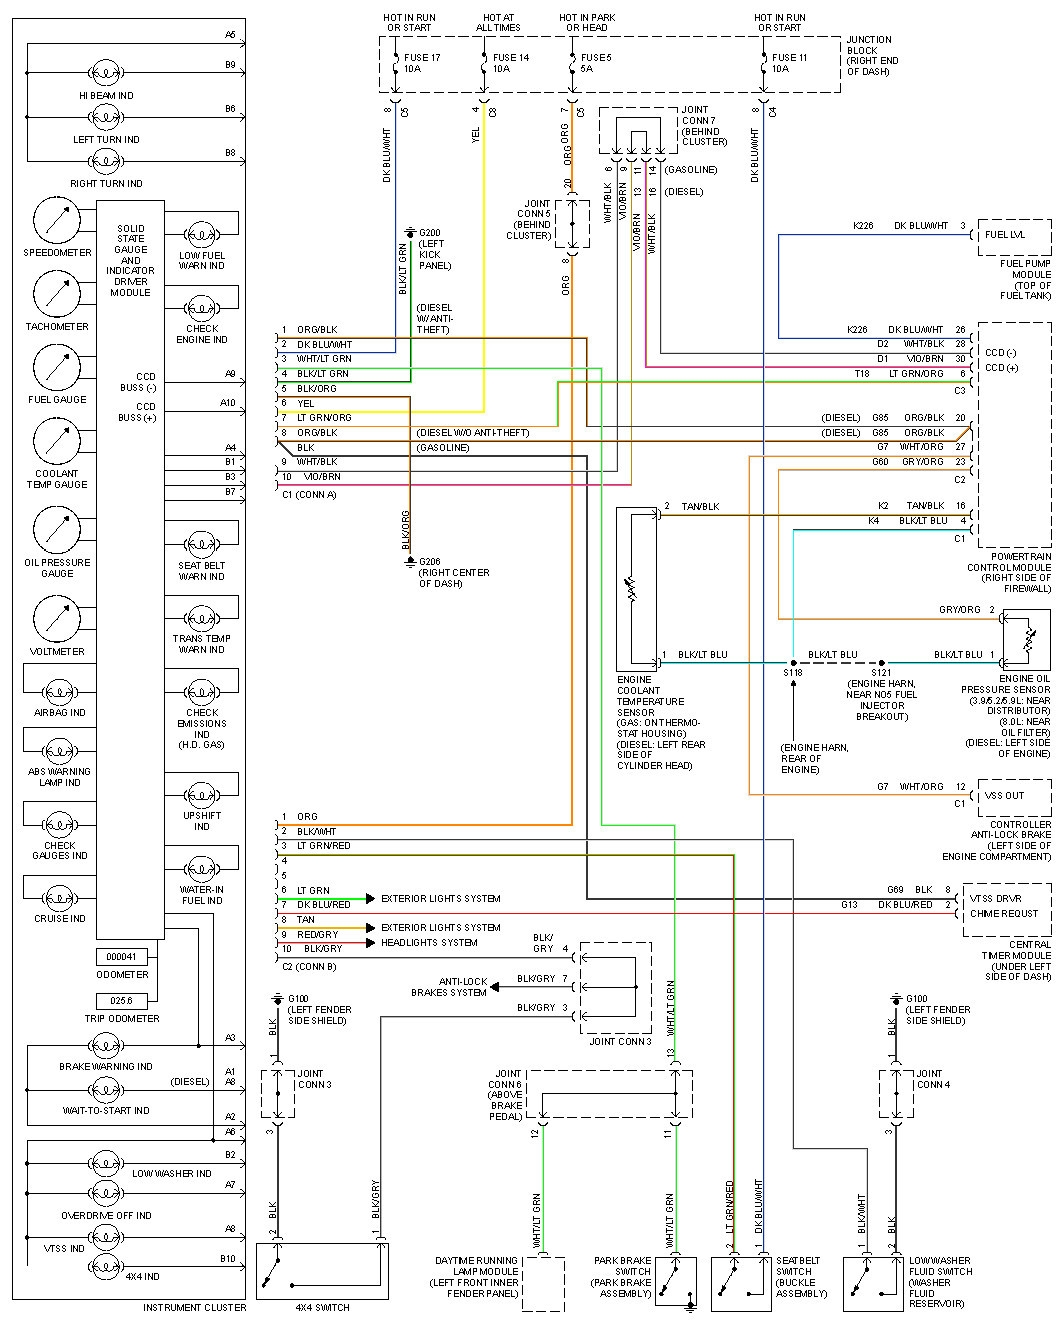 dodge ram 2015 wiring diagram 2005 dodge ram 2500 diesel wiring diagram | free wiring ... #6